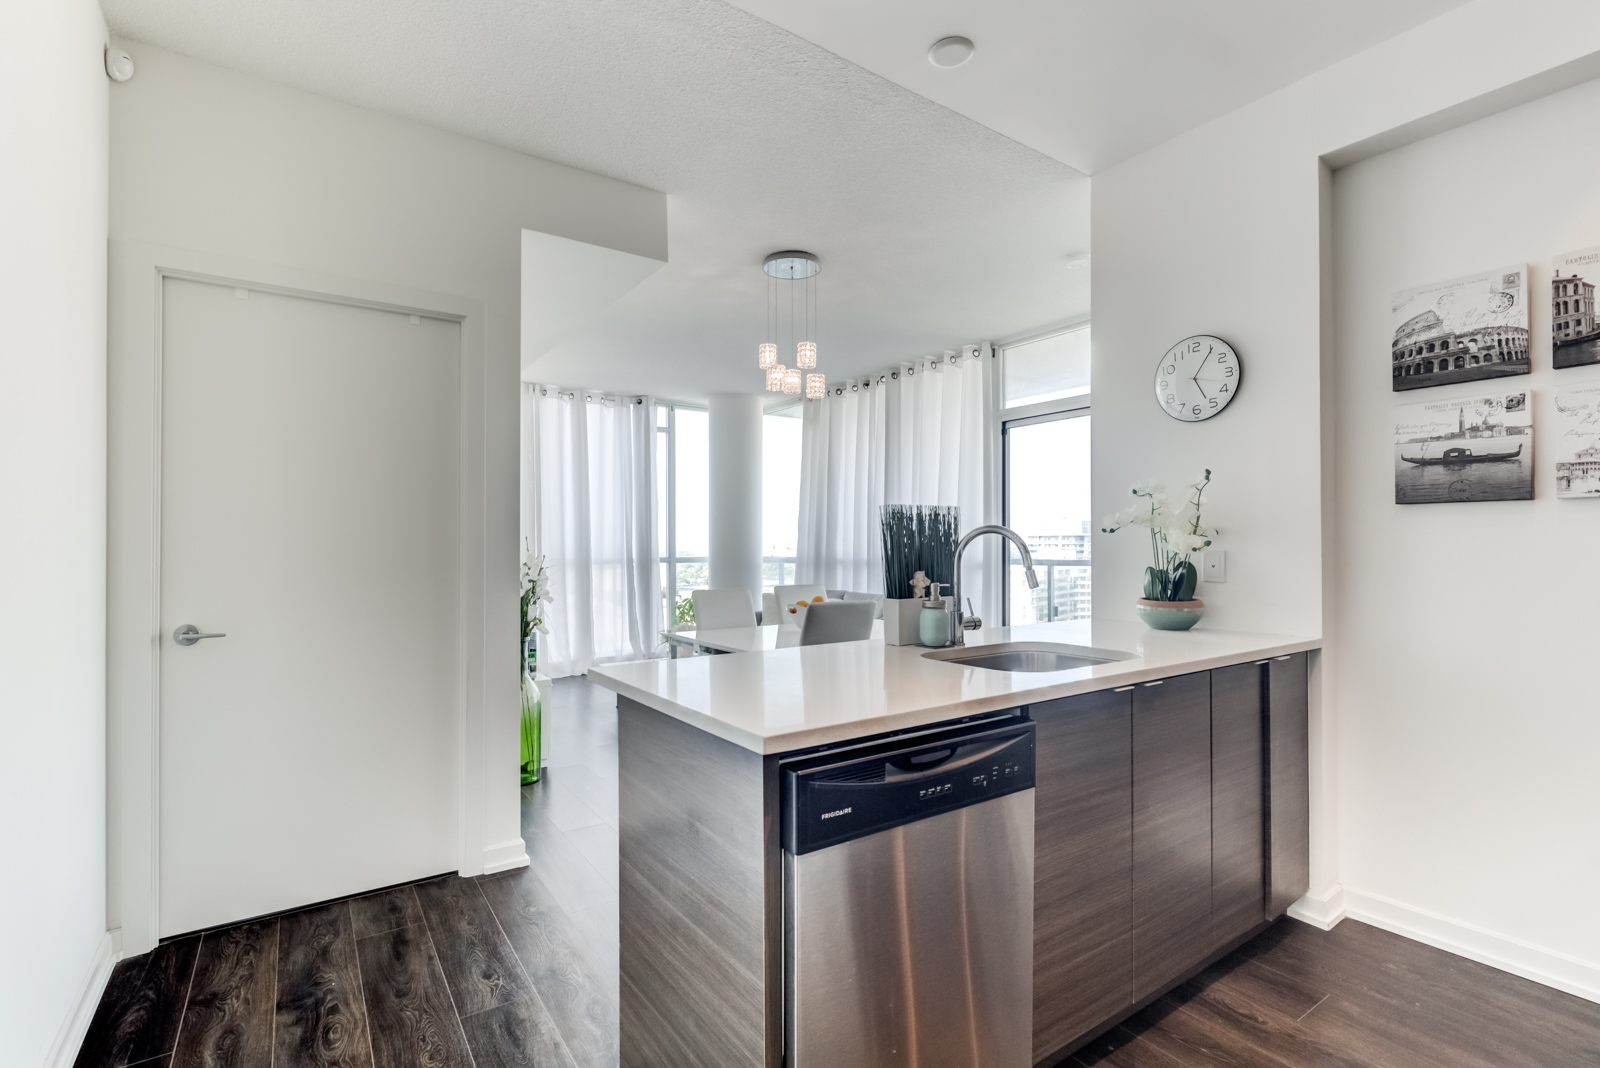 Kitchen breakfast bar with built-in dishwasher at 62 Forest Manor Rd Unit 1803, Toronto.